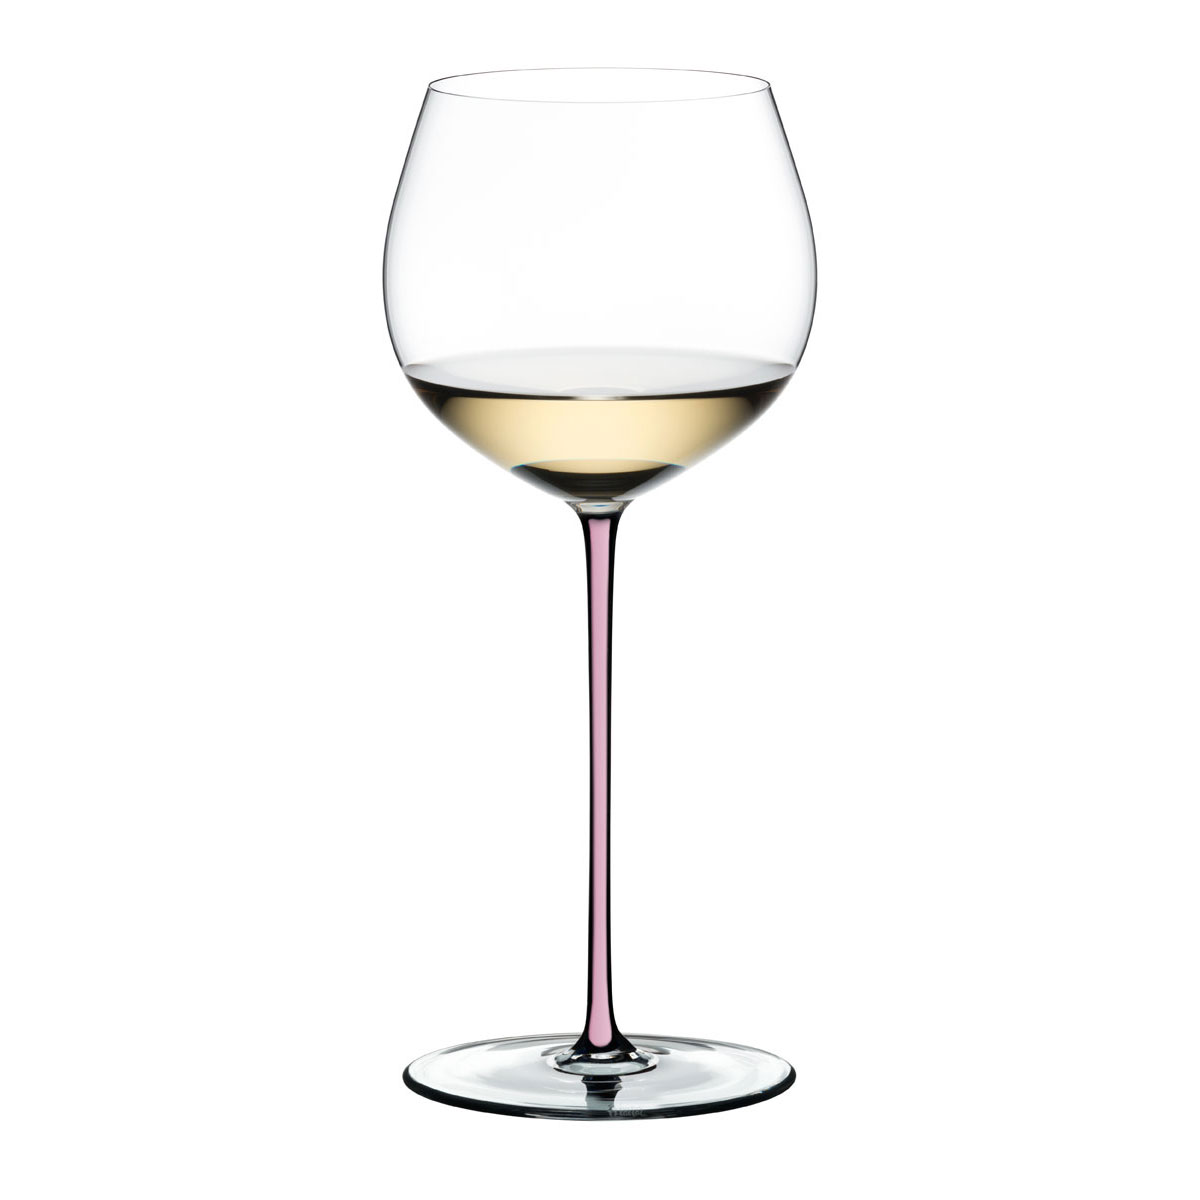 Riedel Fatto A Mano Oaked Chardonnay Crystal Wine Glass, Pink